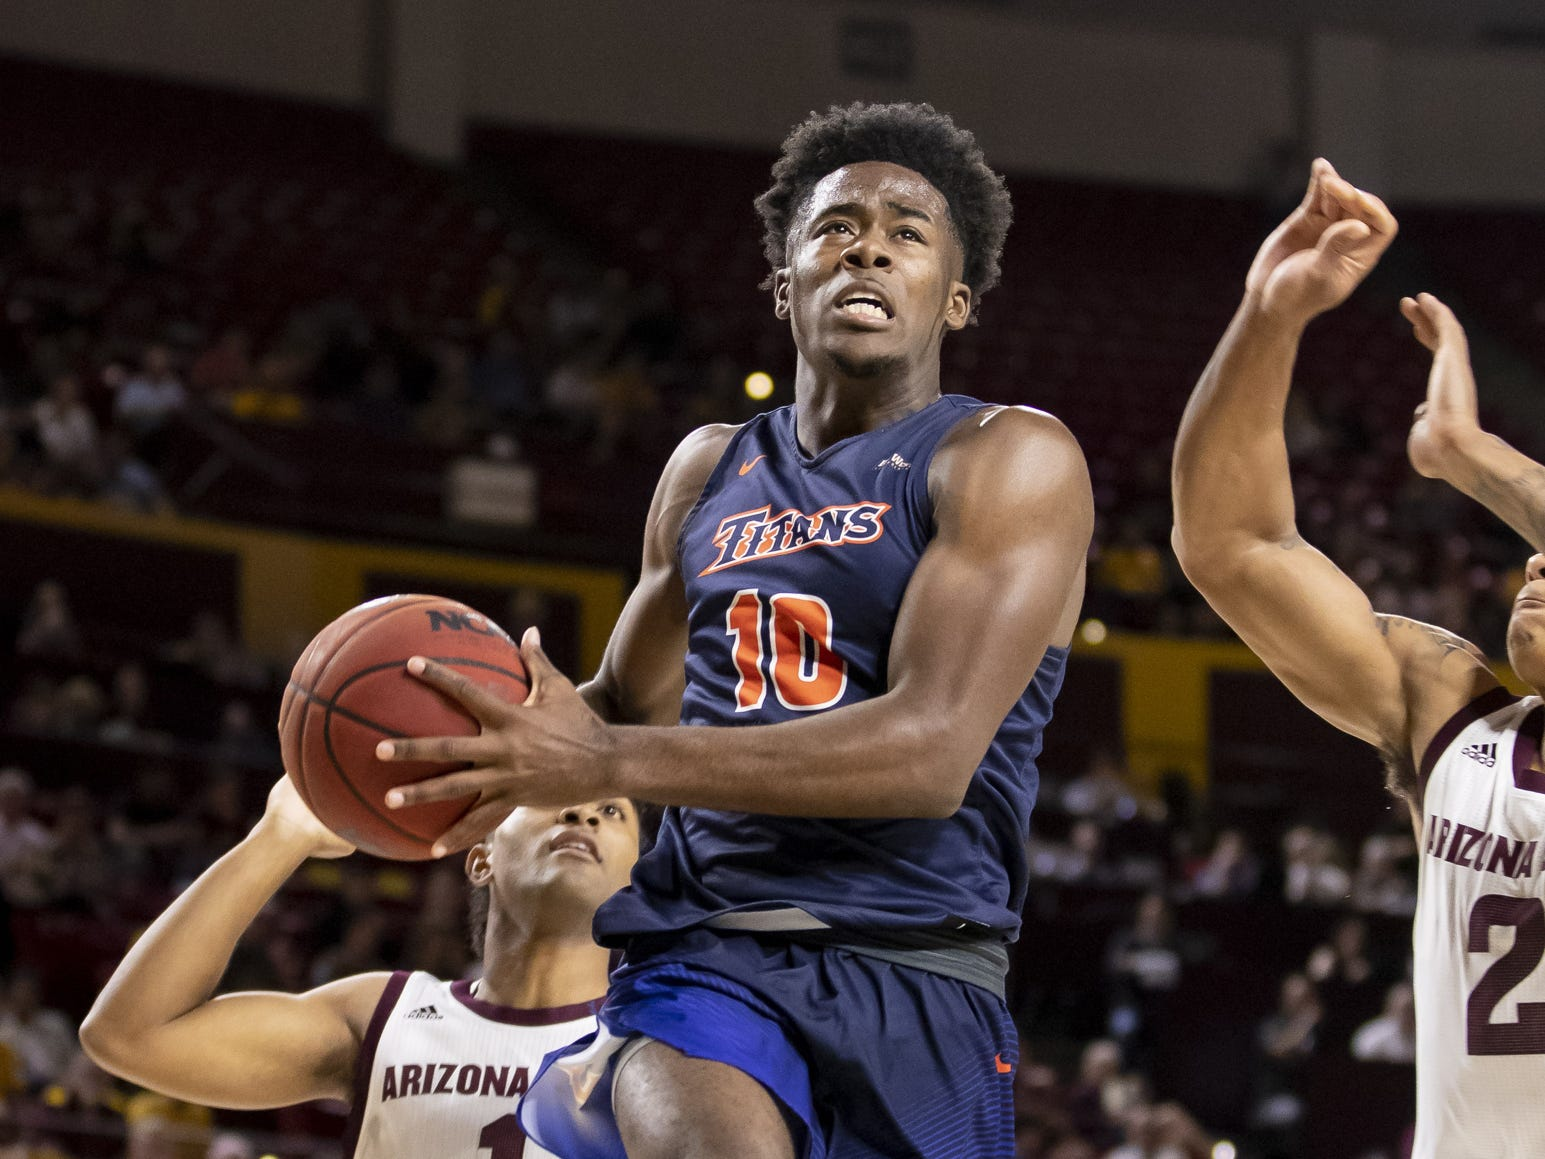 Guard Austen Awosika (10) of the Cal State Fullerton Titans drives to the basket against the Arizona State Sun Devils at Wells Fargo Arena on Tuesday, November 6, 2018 in Tempe, Arizona.